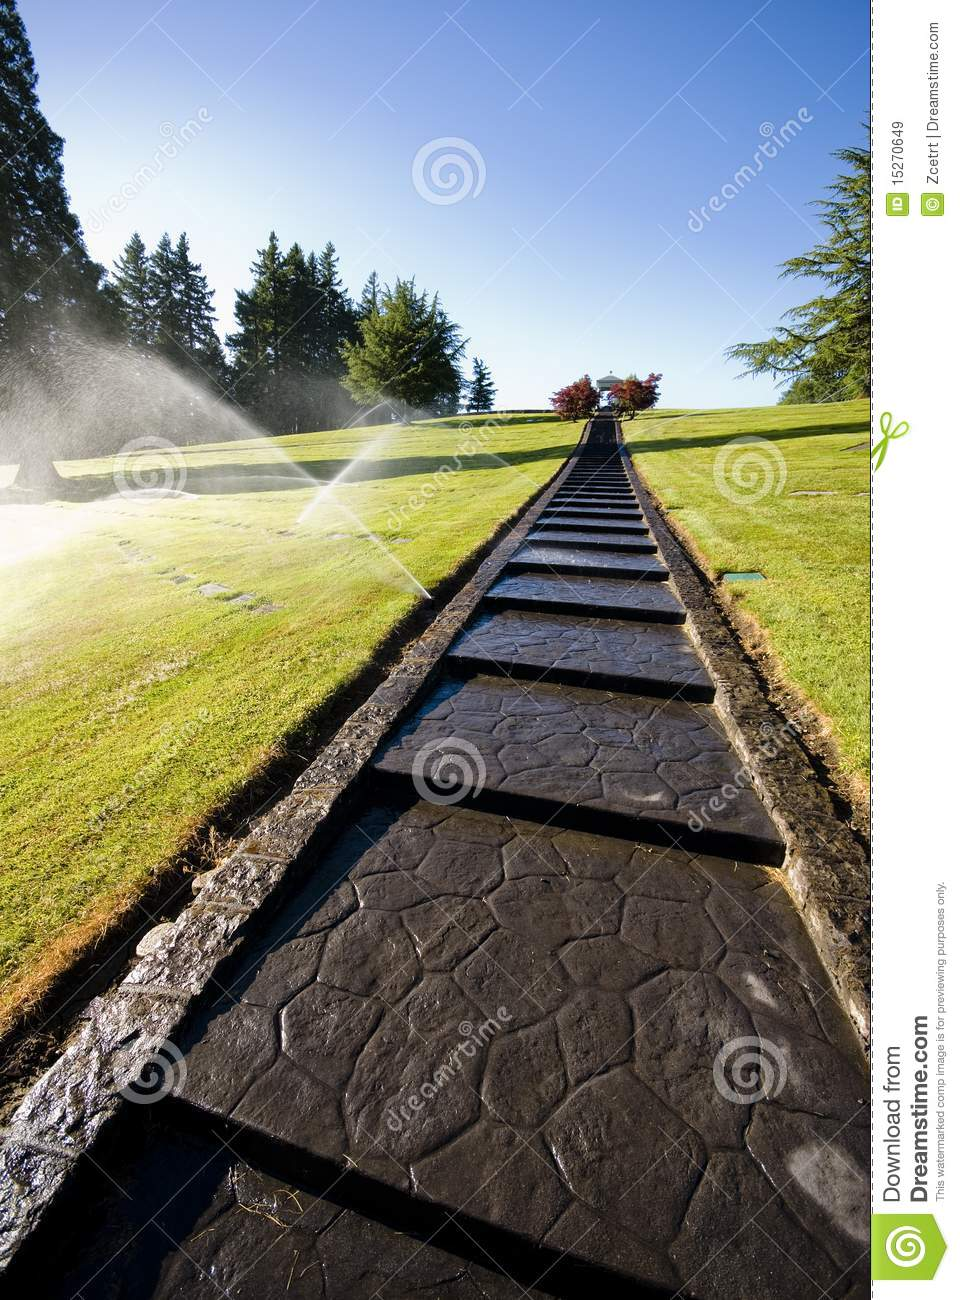 Lawn Watering Royalty Free Stock Images   Image  15270649